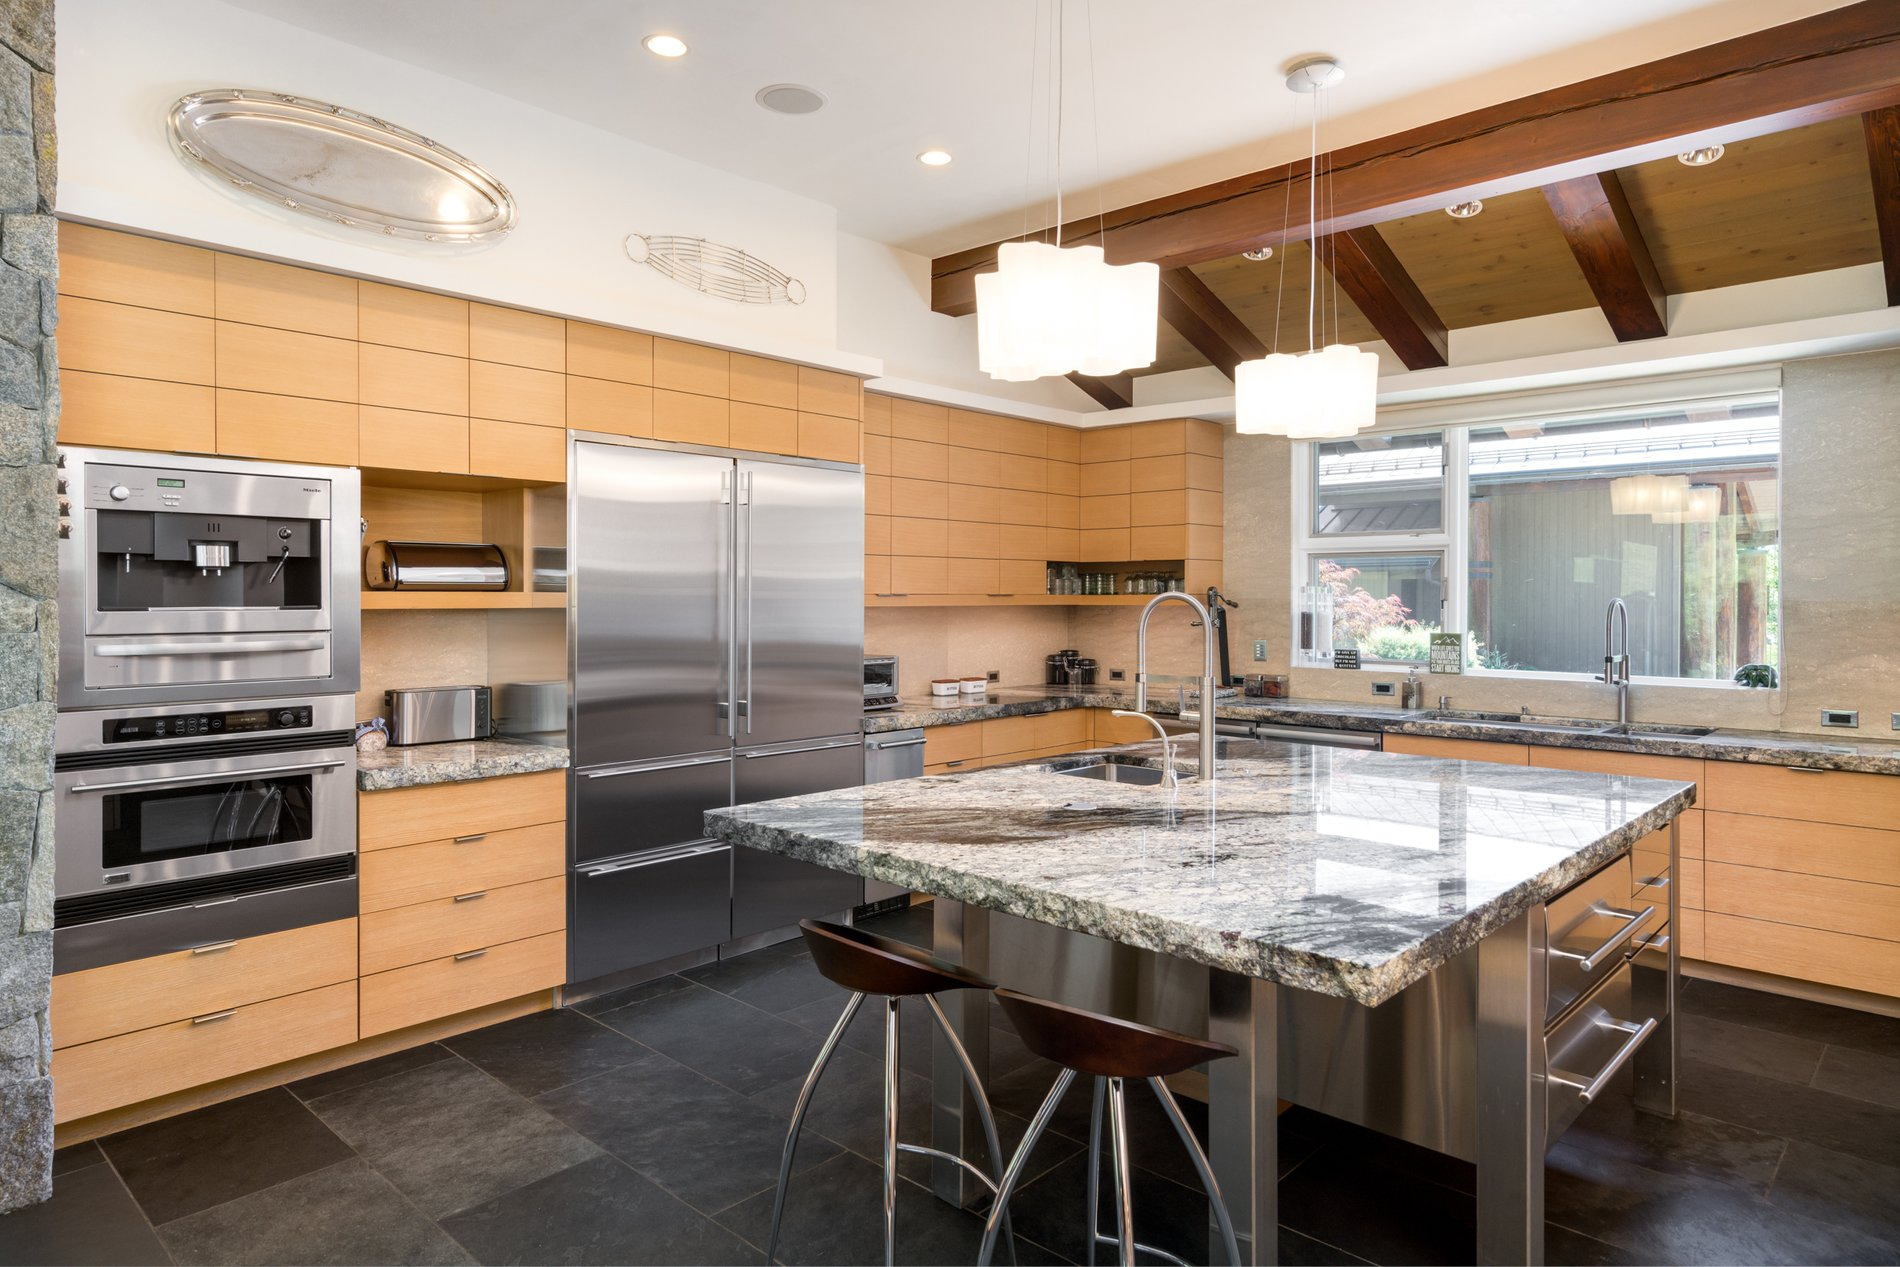 Stainless steel appliances with built in ovens. modern rustic home.